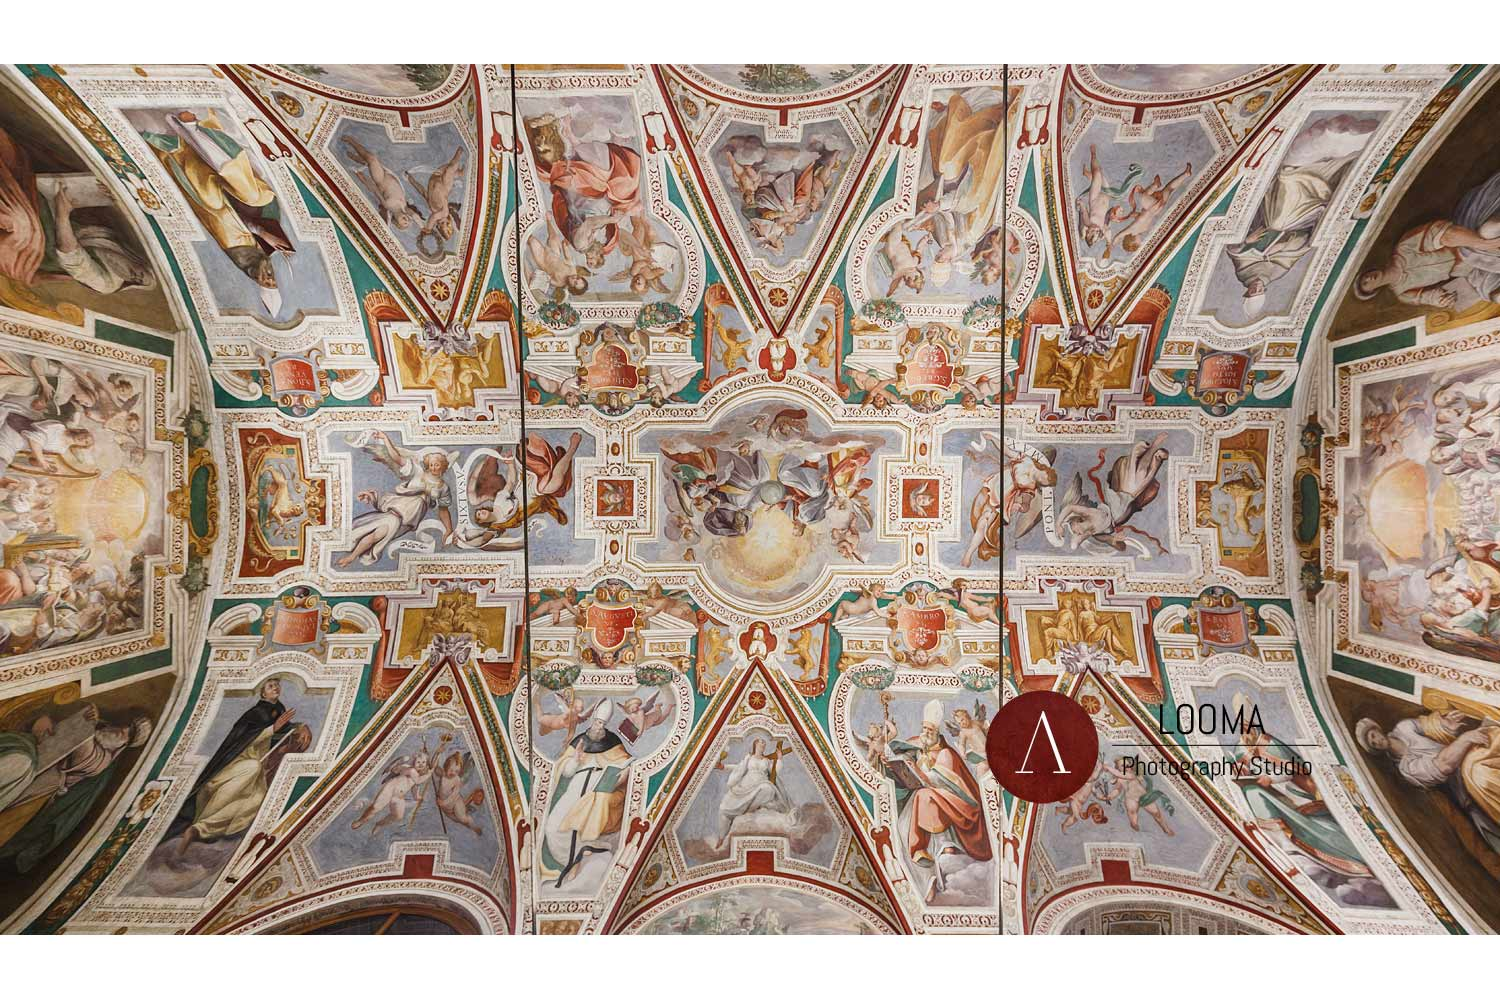 The frescoed ceiling vault (17th century) of San Lorenzo in Palatio church